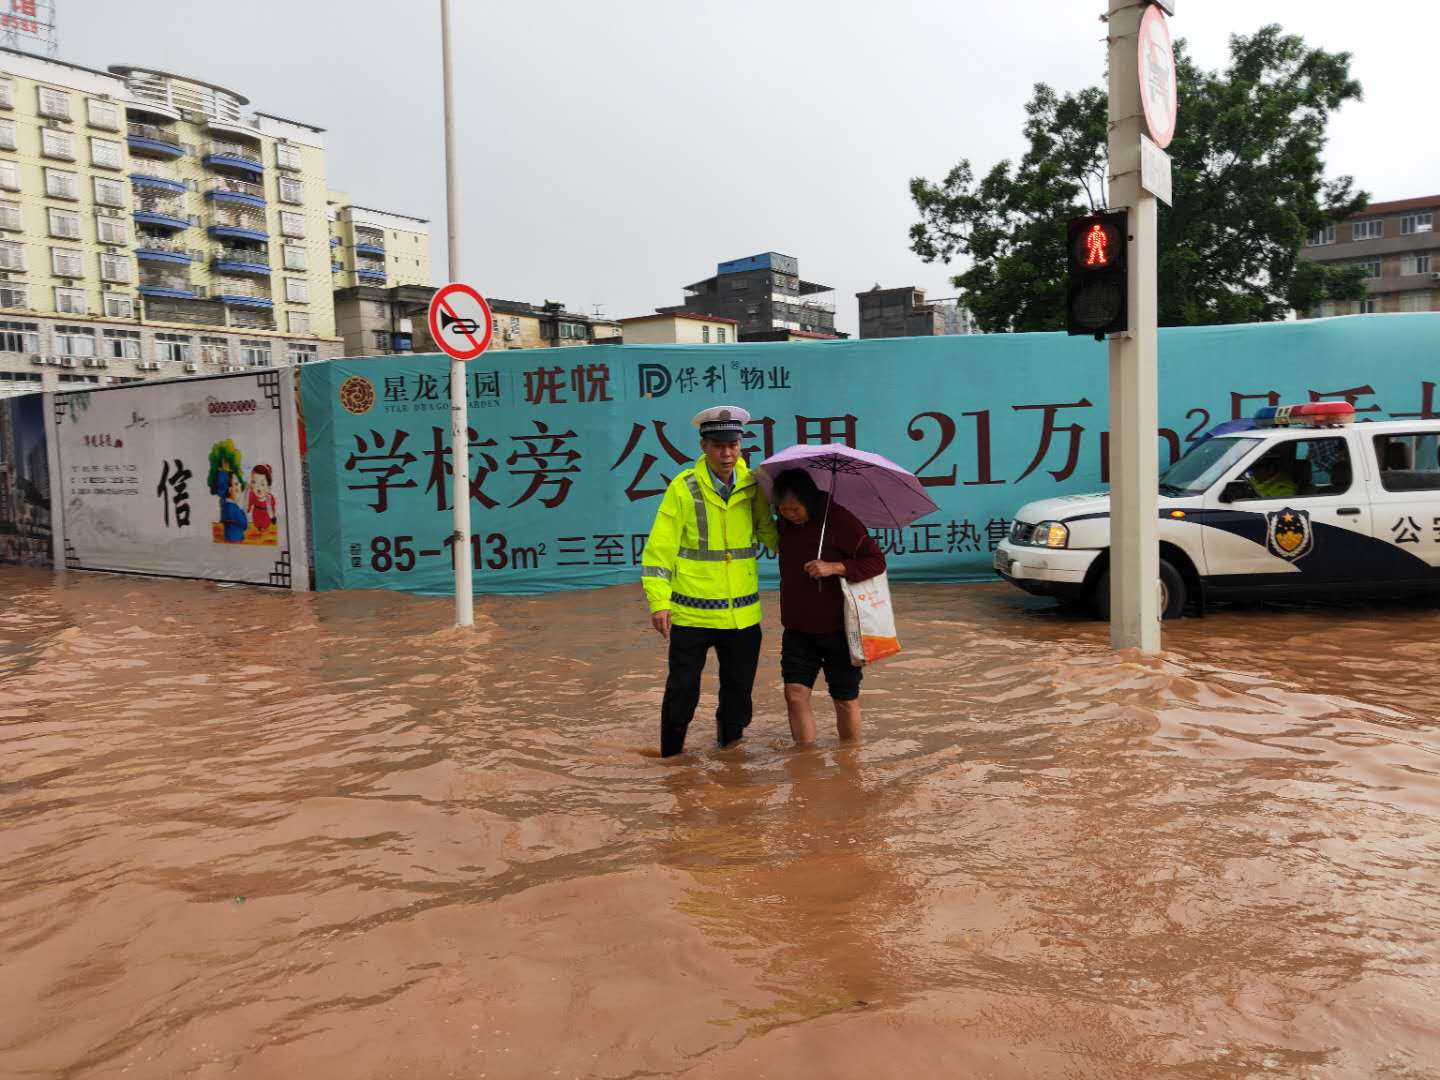 Torrential rains trouble traffic in Guangdong